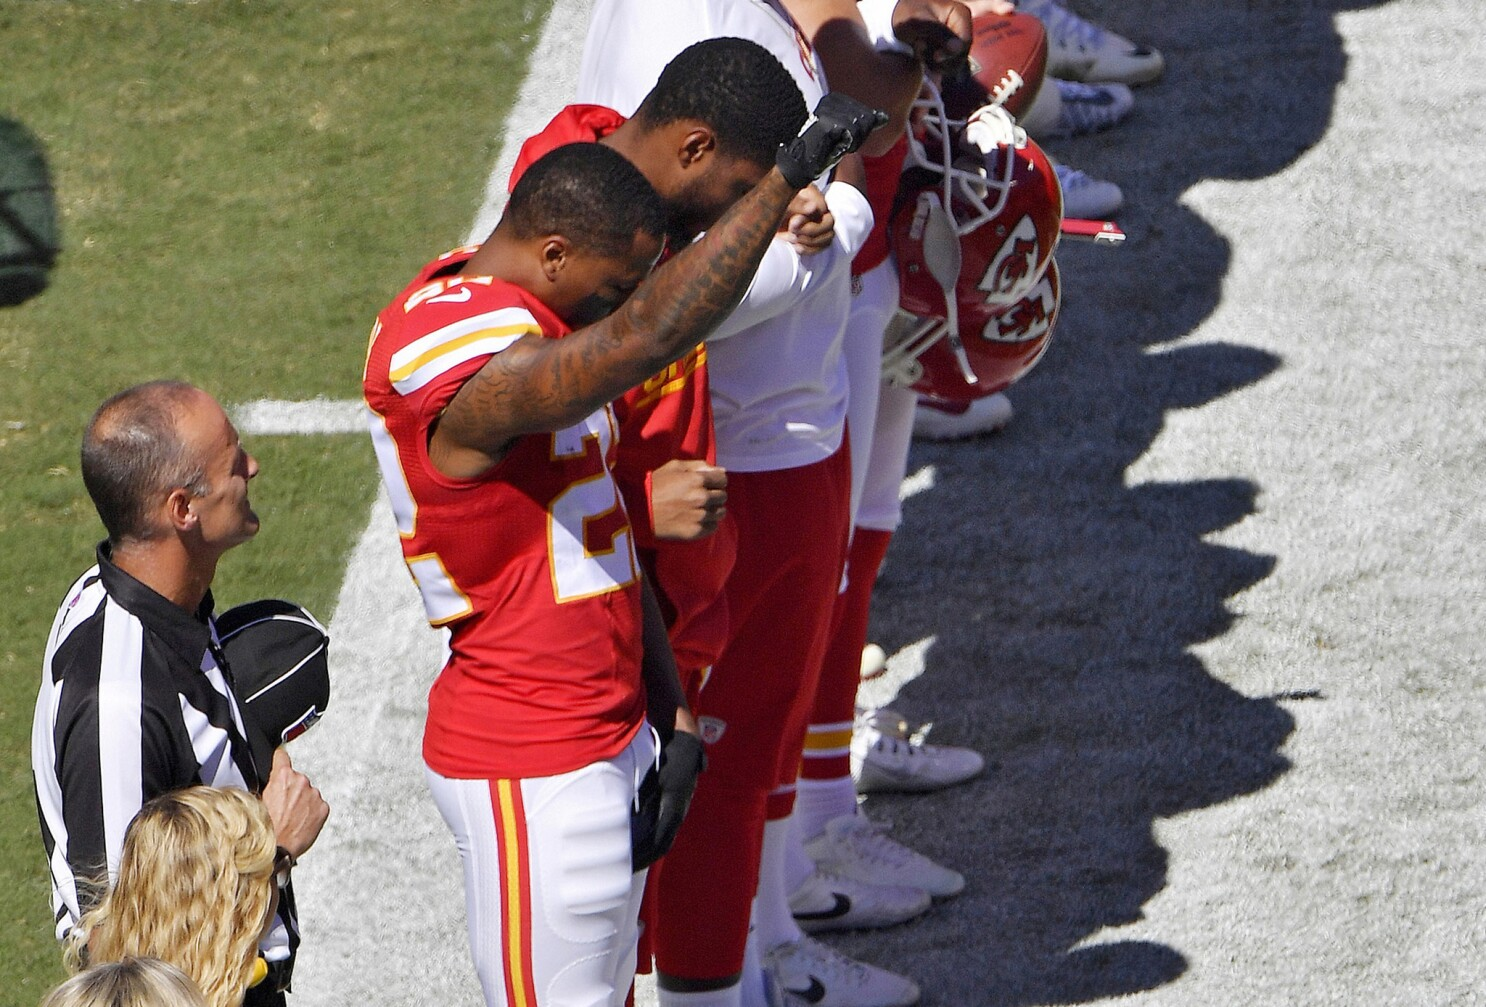 Around The Nfl Some Players Link Arms Or Raise A Fist In The Air During National Anthem Los Angeles Times